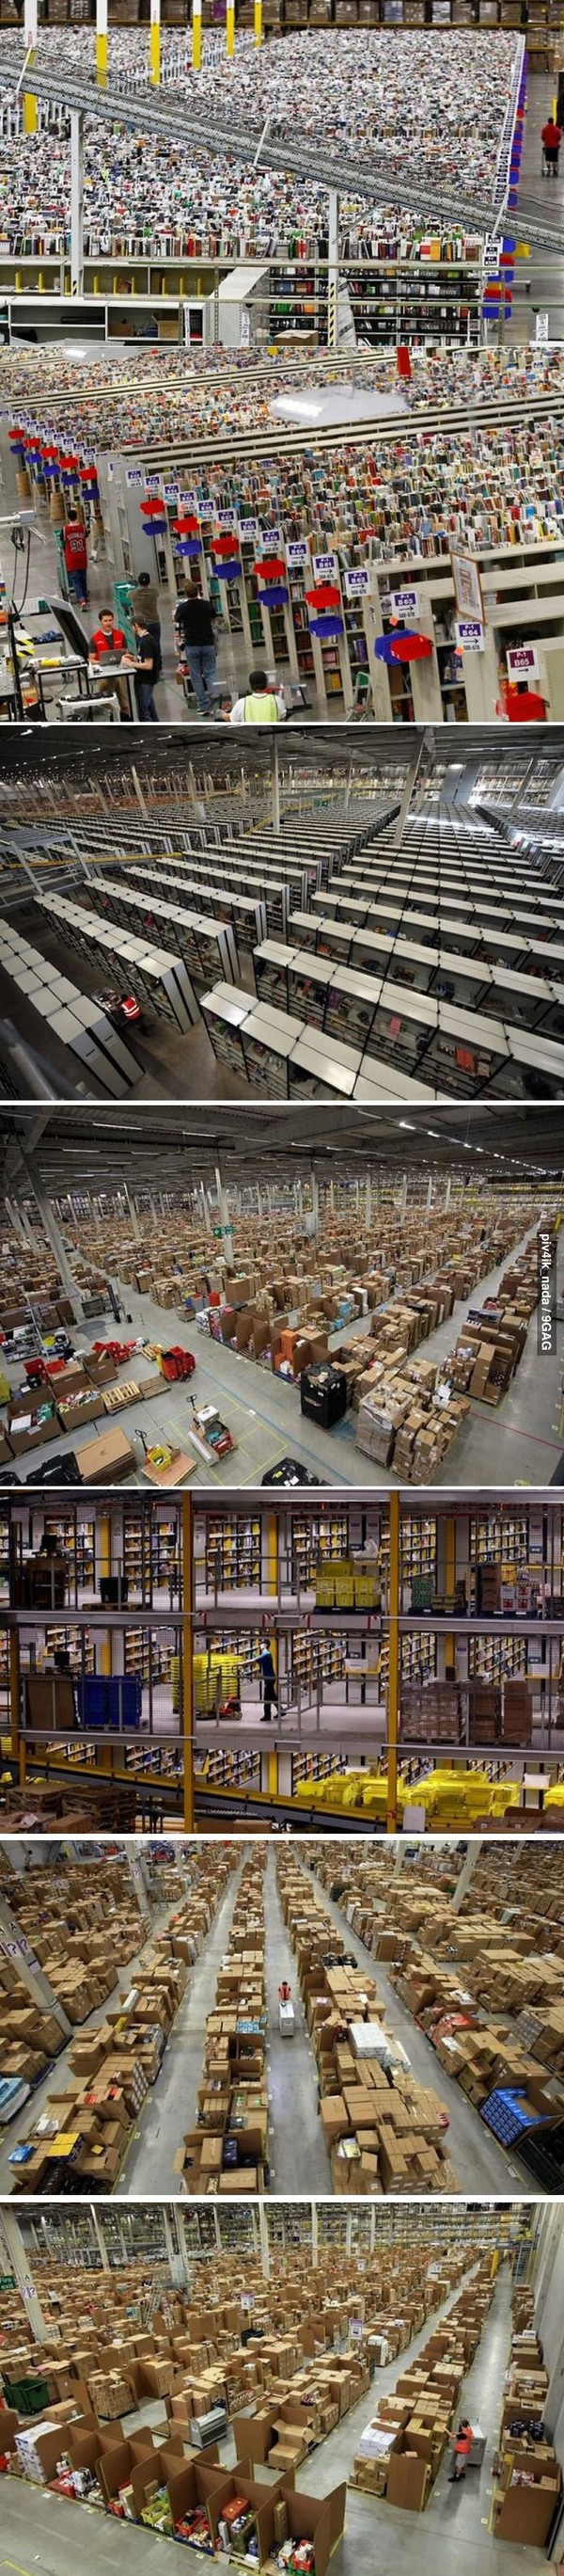 Amazon vu de lintrieur